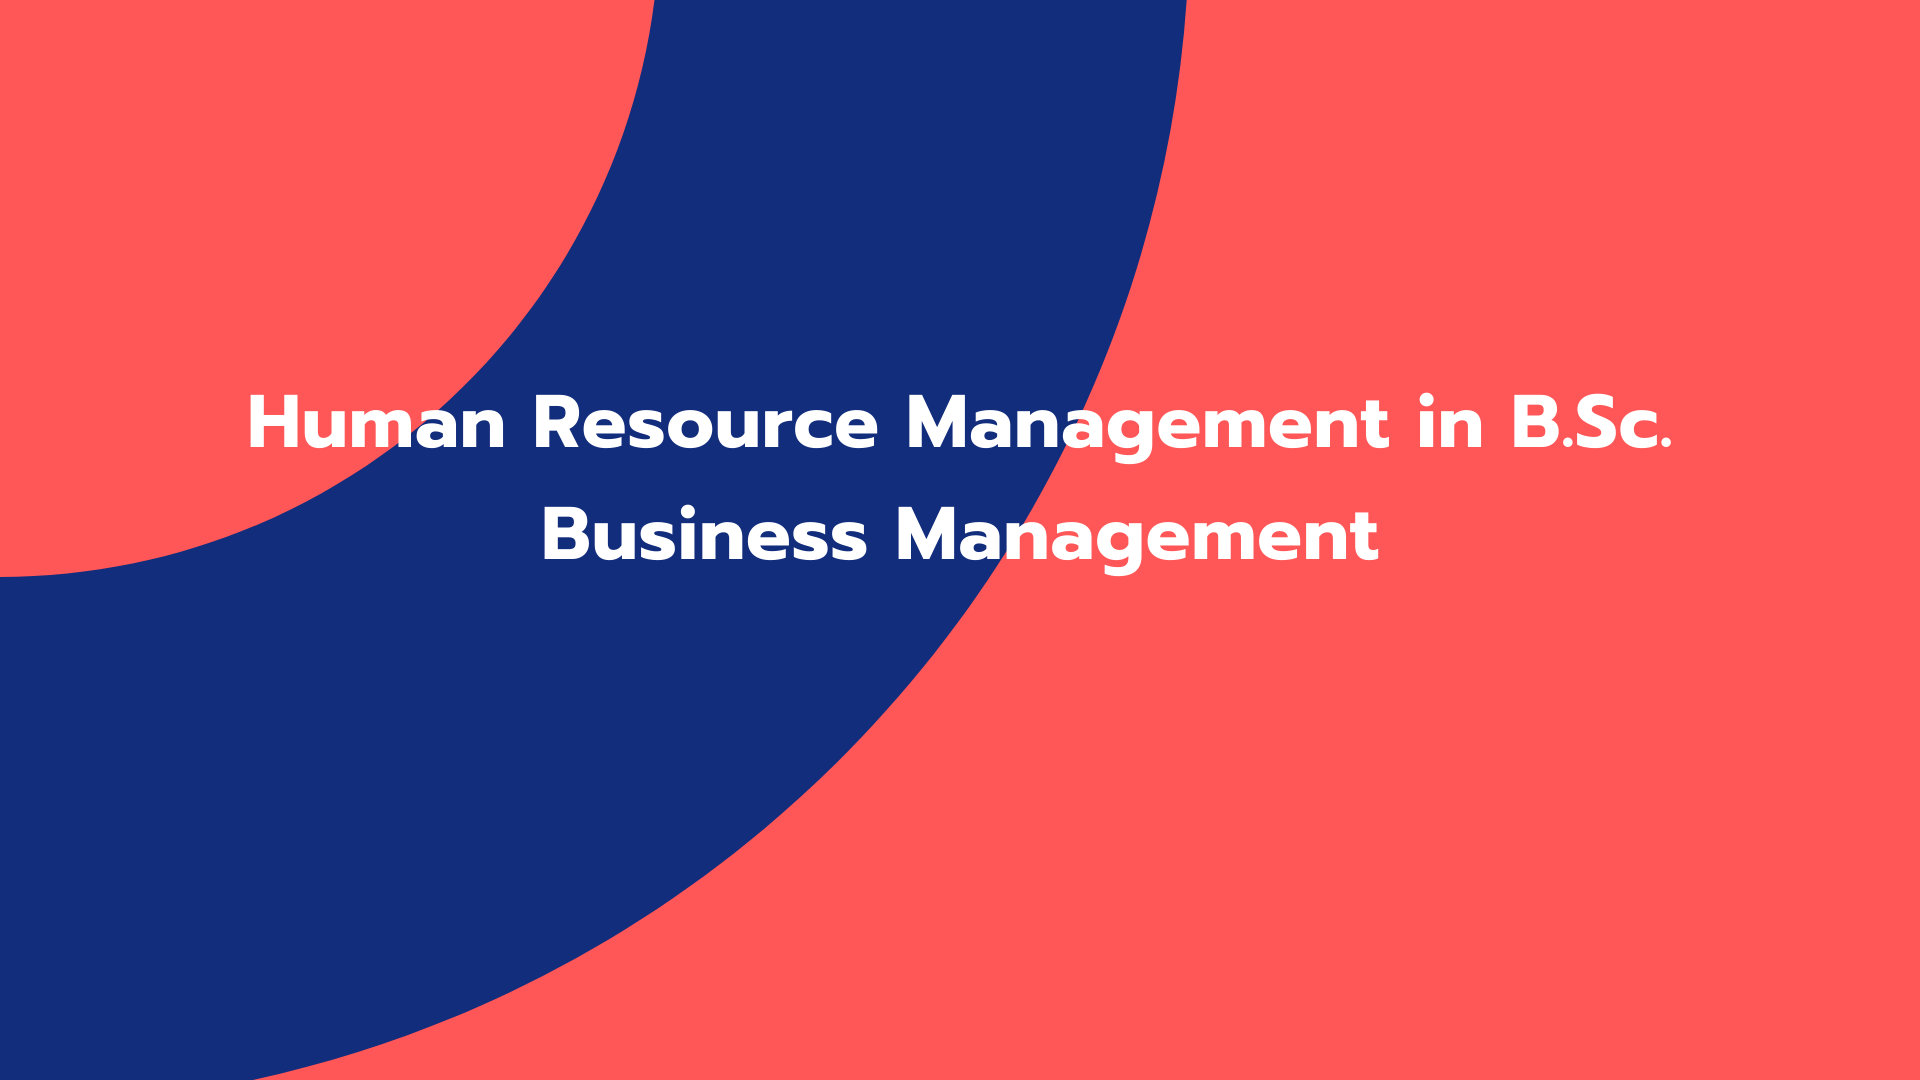 Human Resource Management in B.Sc. Business Management